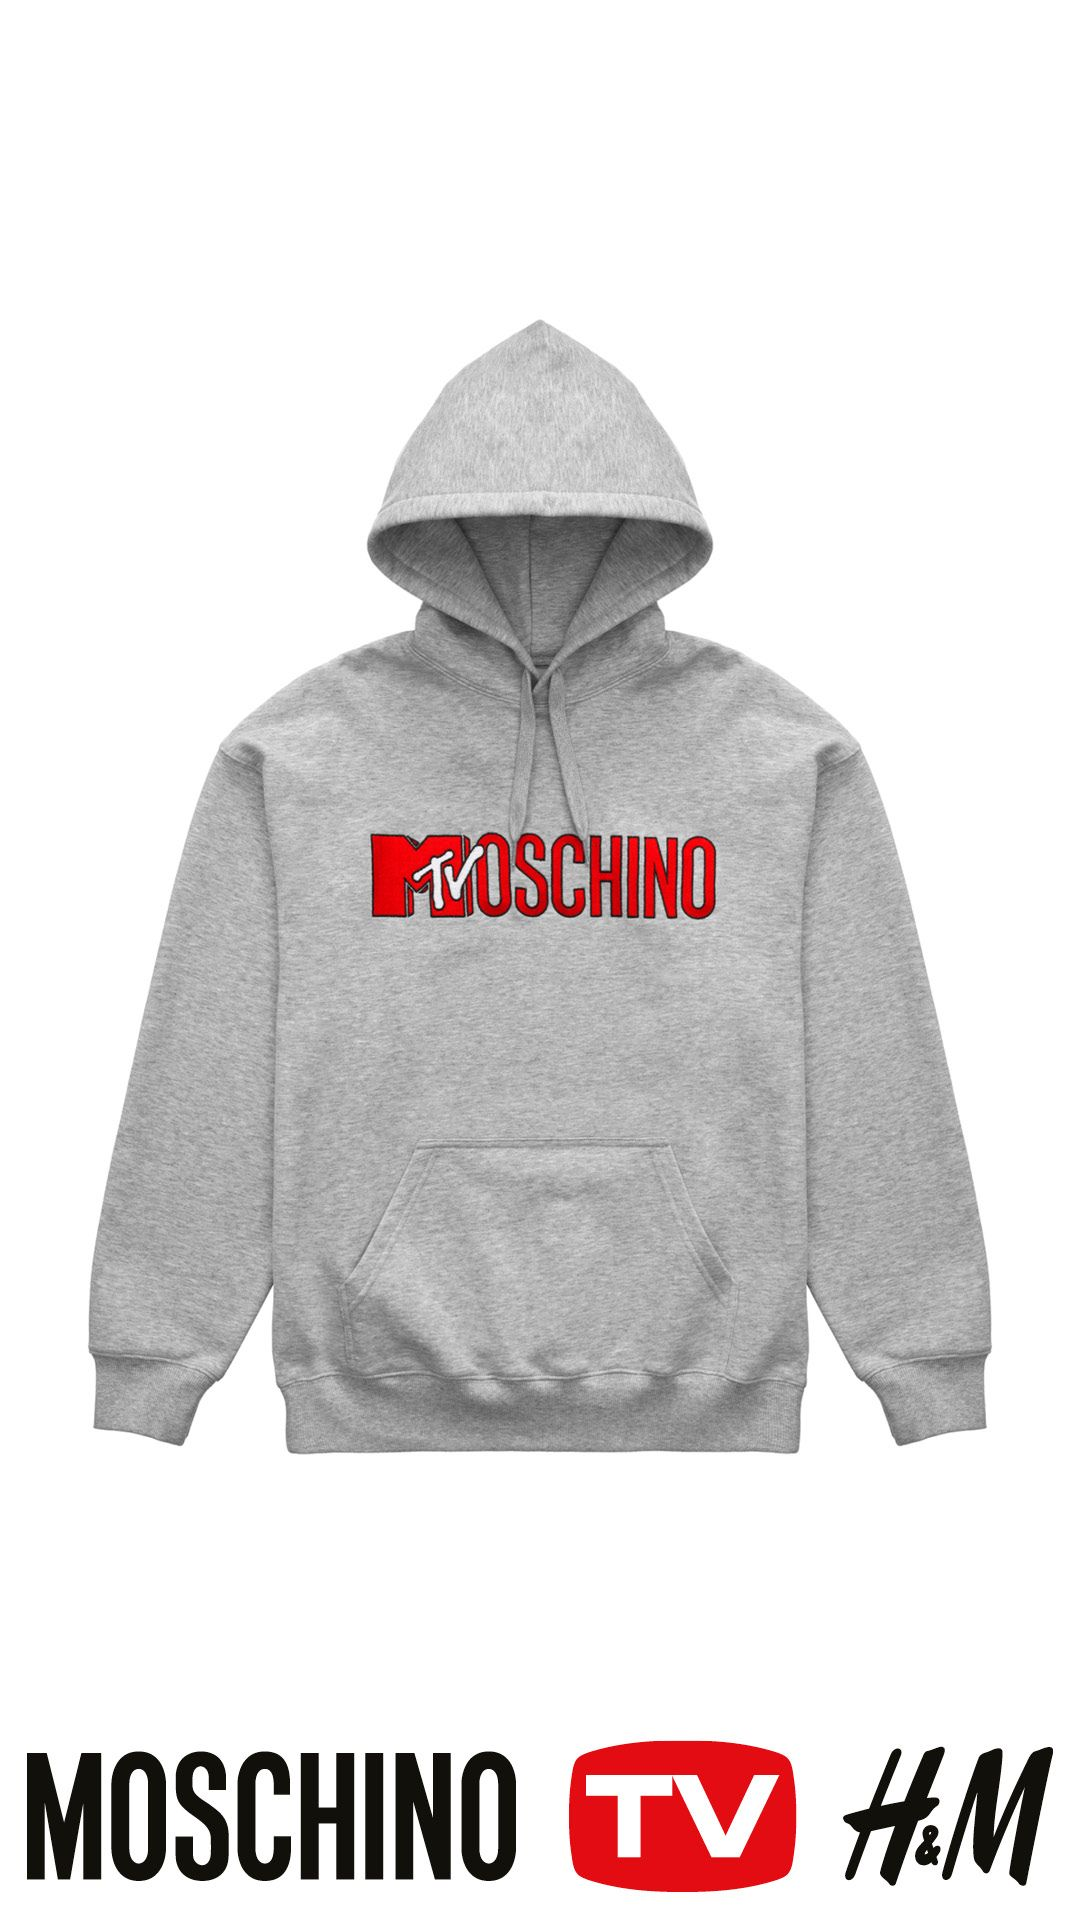 fac472750420ab MOSCHINO  tv  H M features bold streetwear-inspired clothing and  accessories for women and men. Welcome to a glamorous world of pop culture,  ...